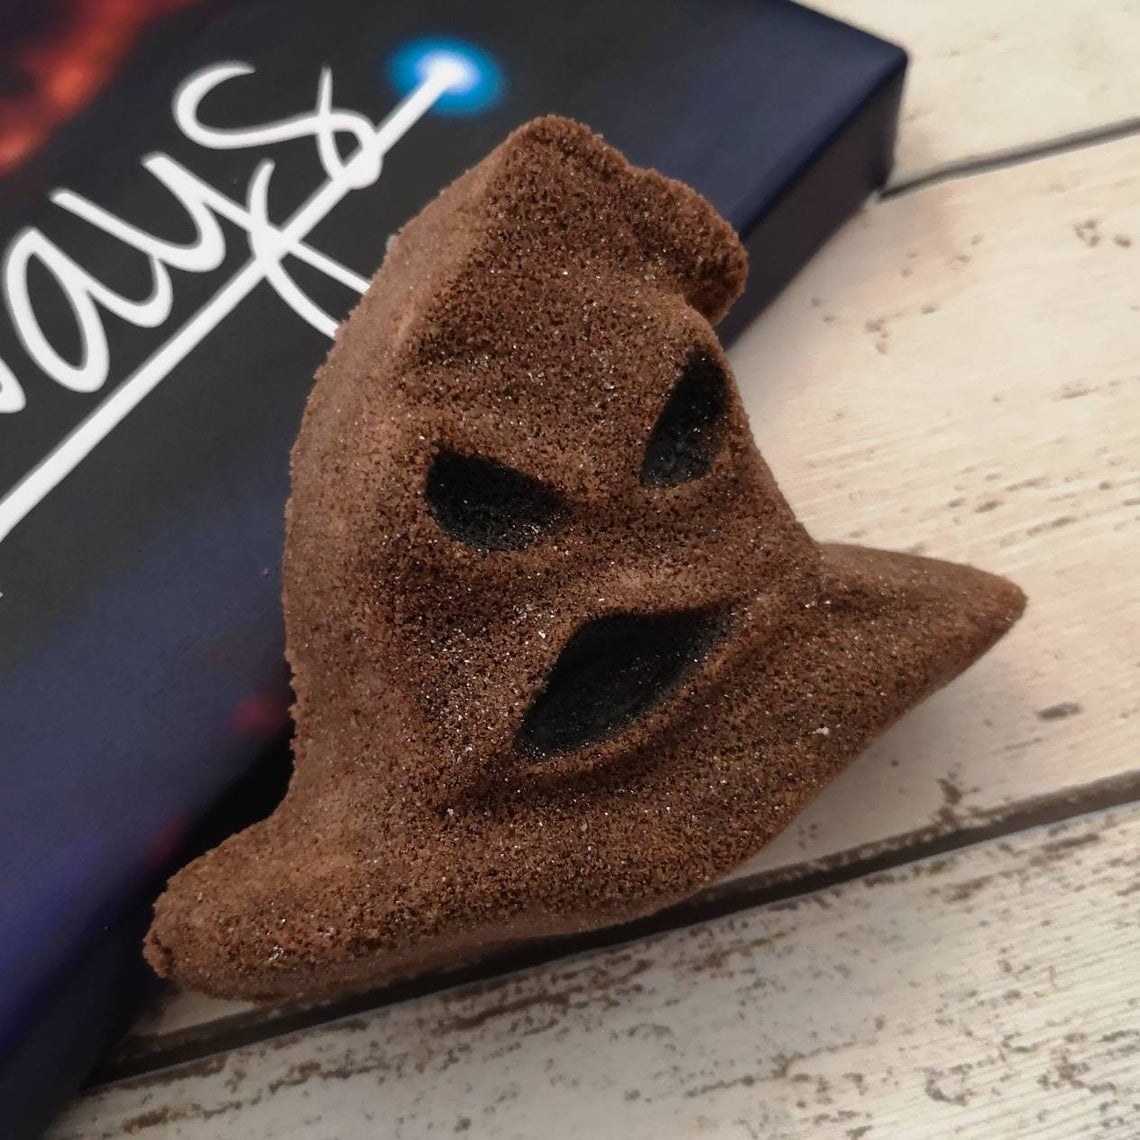 A bath bomb shaped exactly like the Sorting Hat in Harry Potter